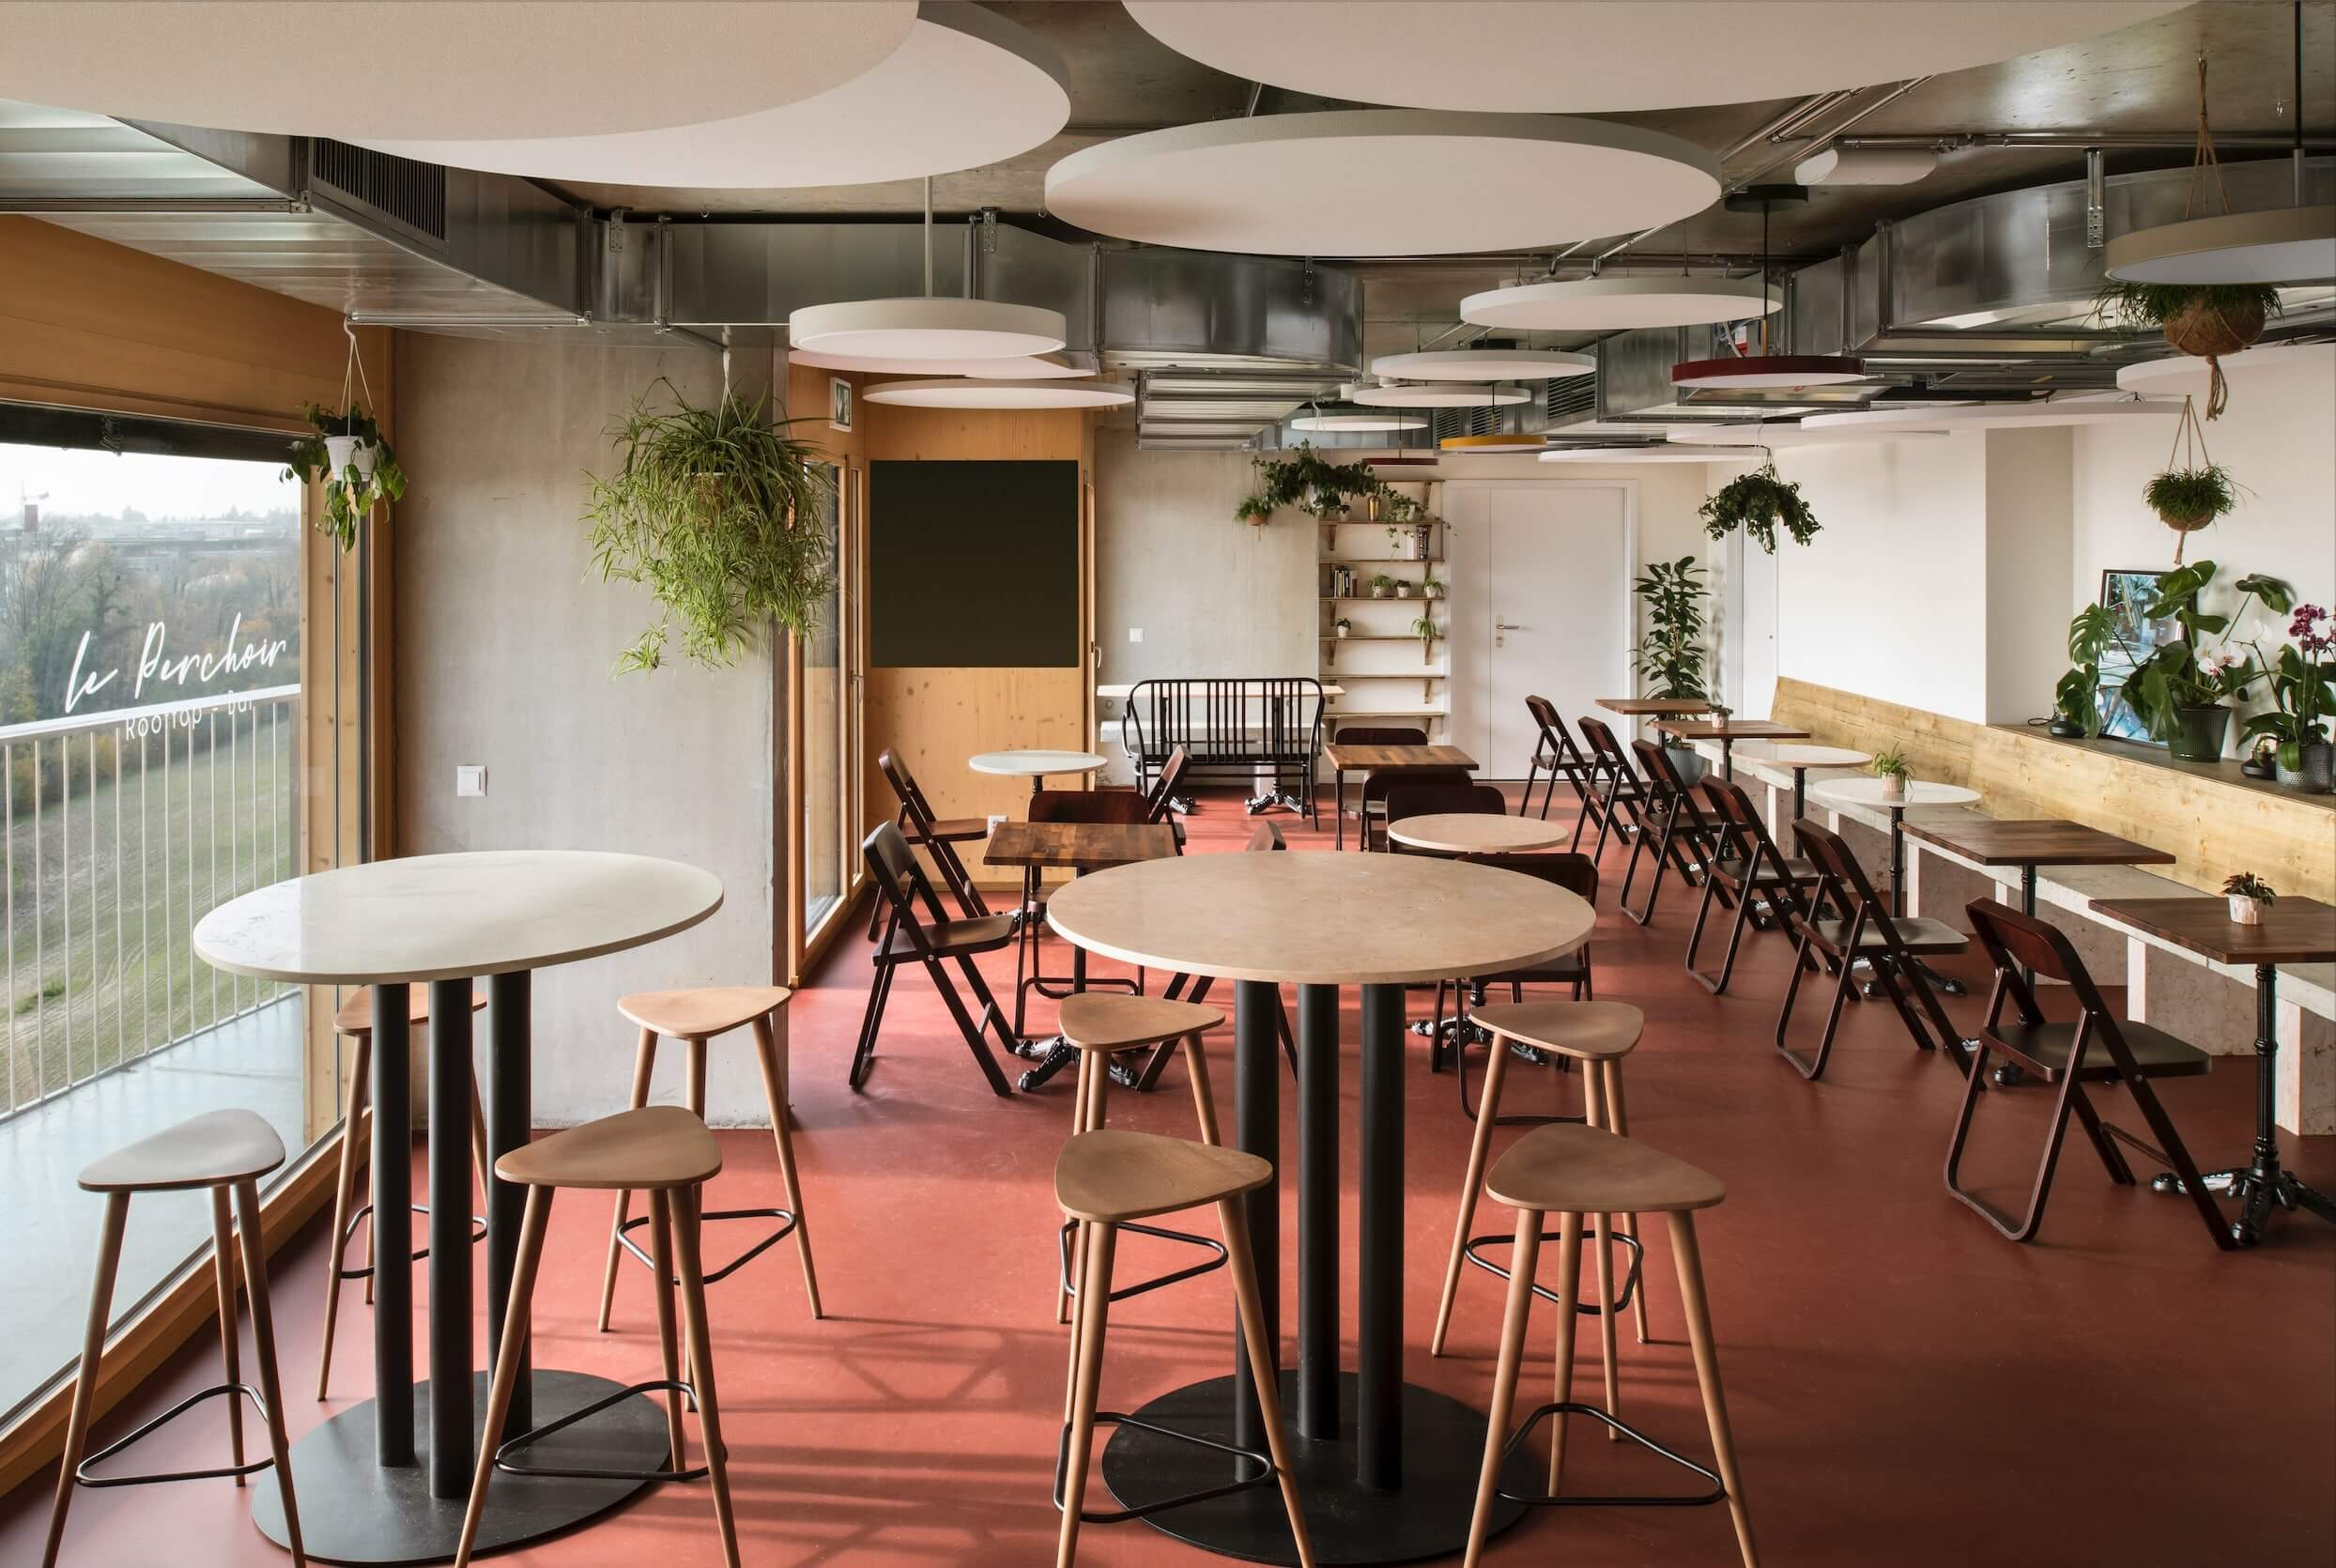 The interior design of the bar for EPFL students